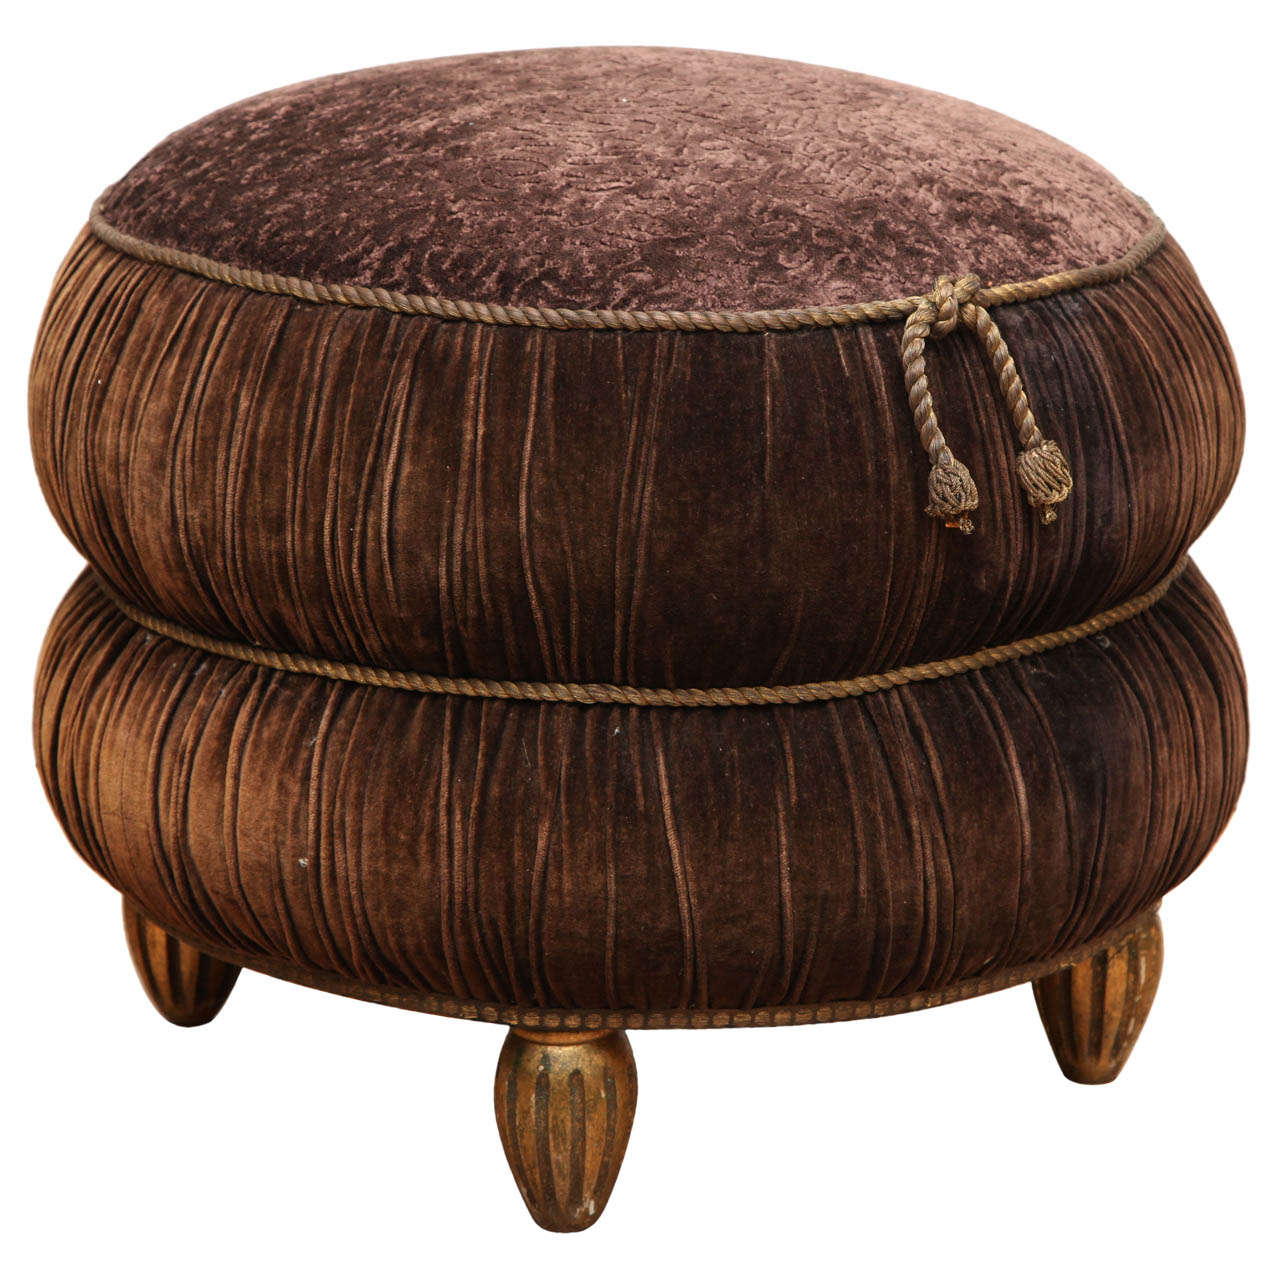 Elegant Art Deco Pouf At 1stdibs